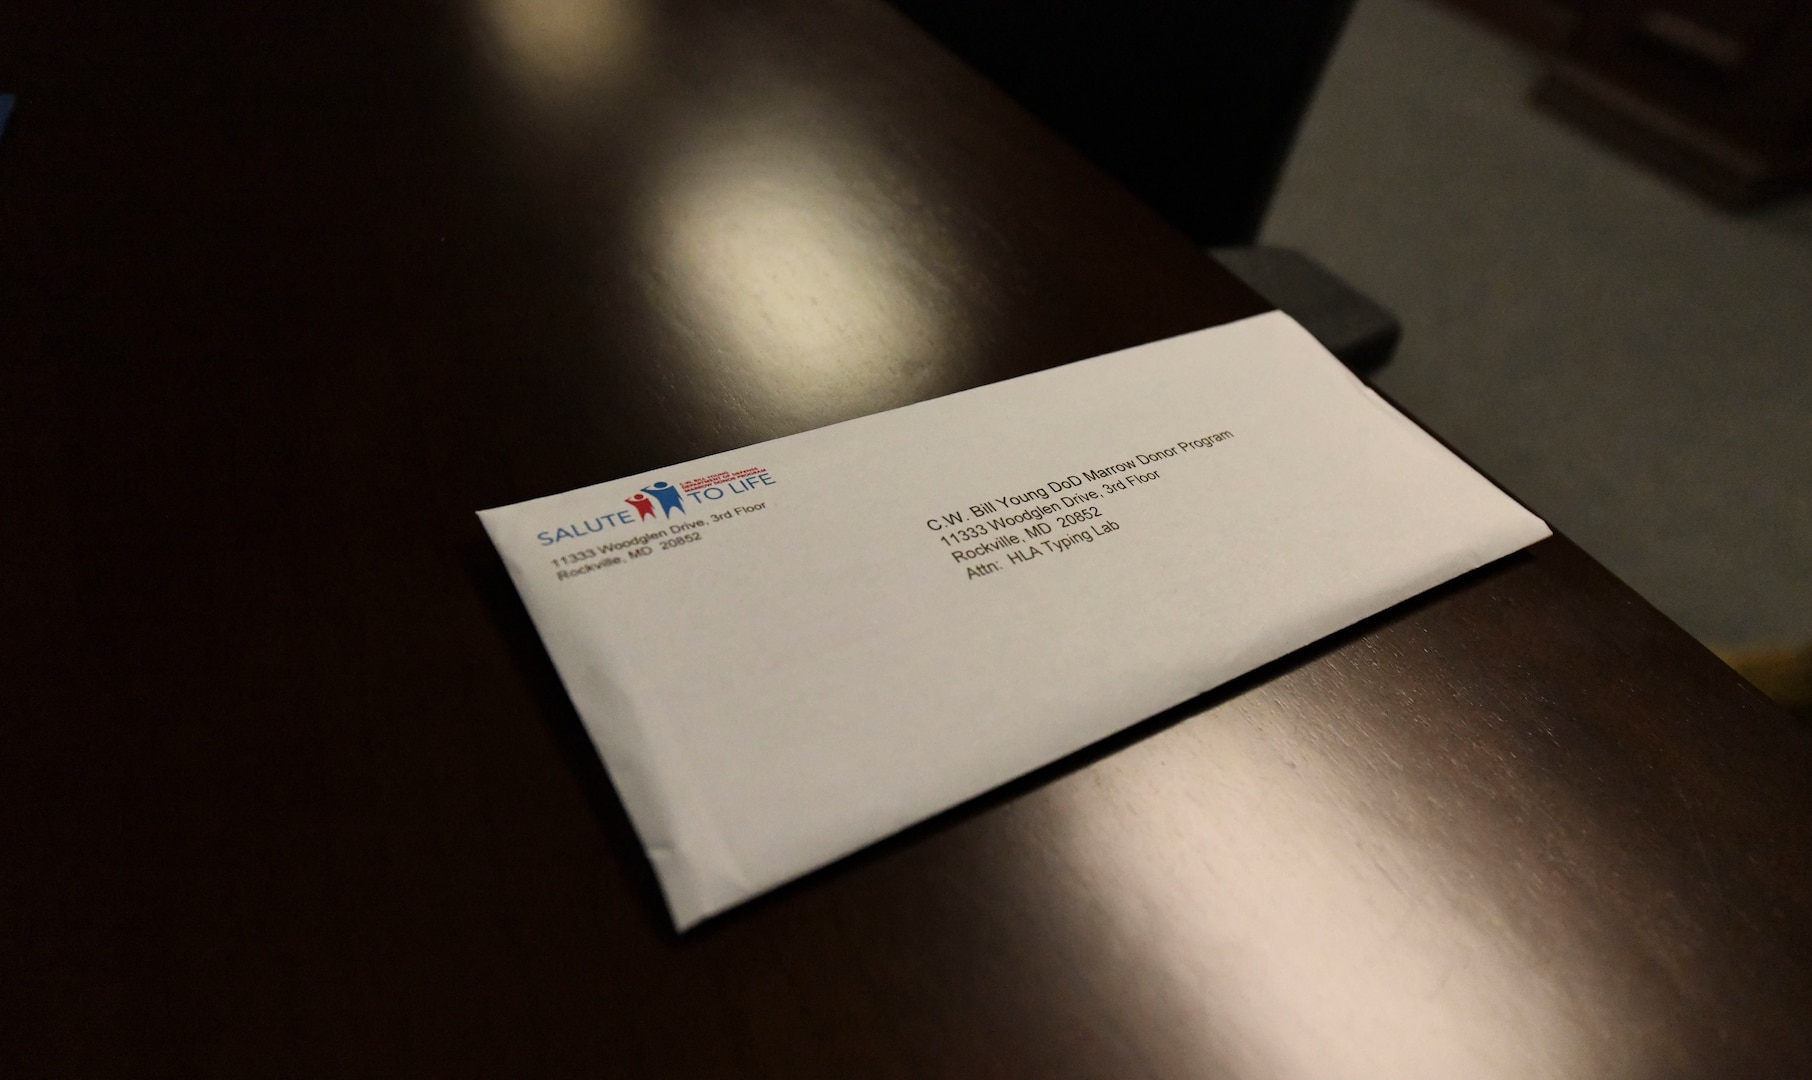 A single envelope lays on a table.